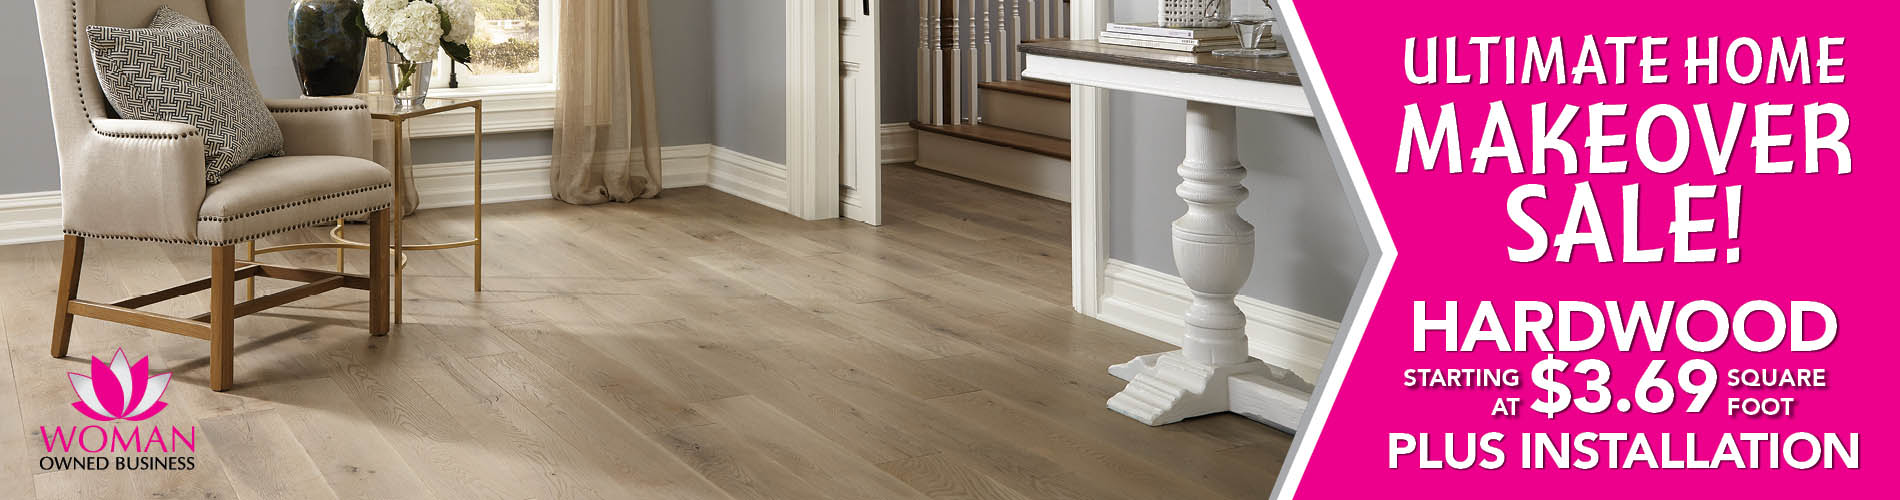 Hardwood flooring starting at $3.69 sq.ft. plus installation during the Home Makeover Sale at Carpets & Us Floors To Go Design Center